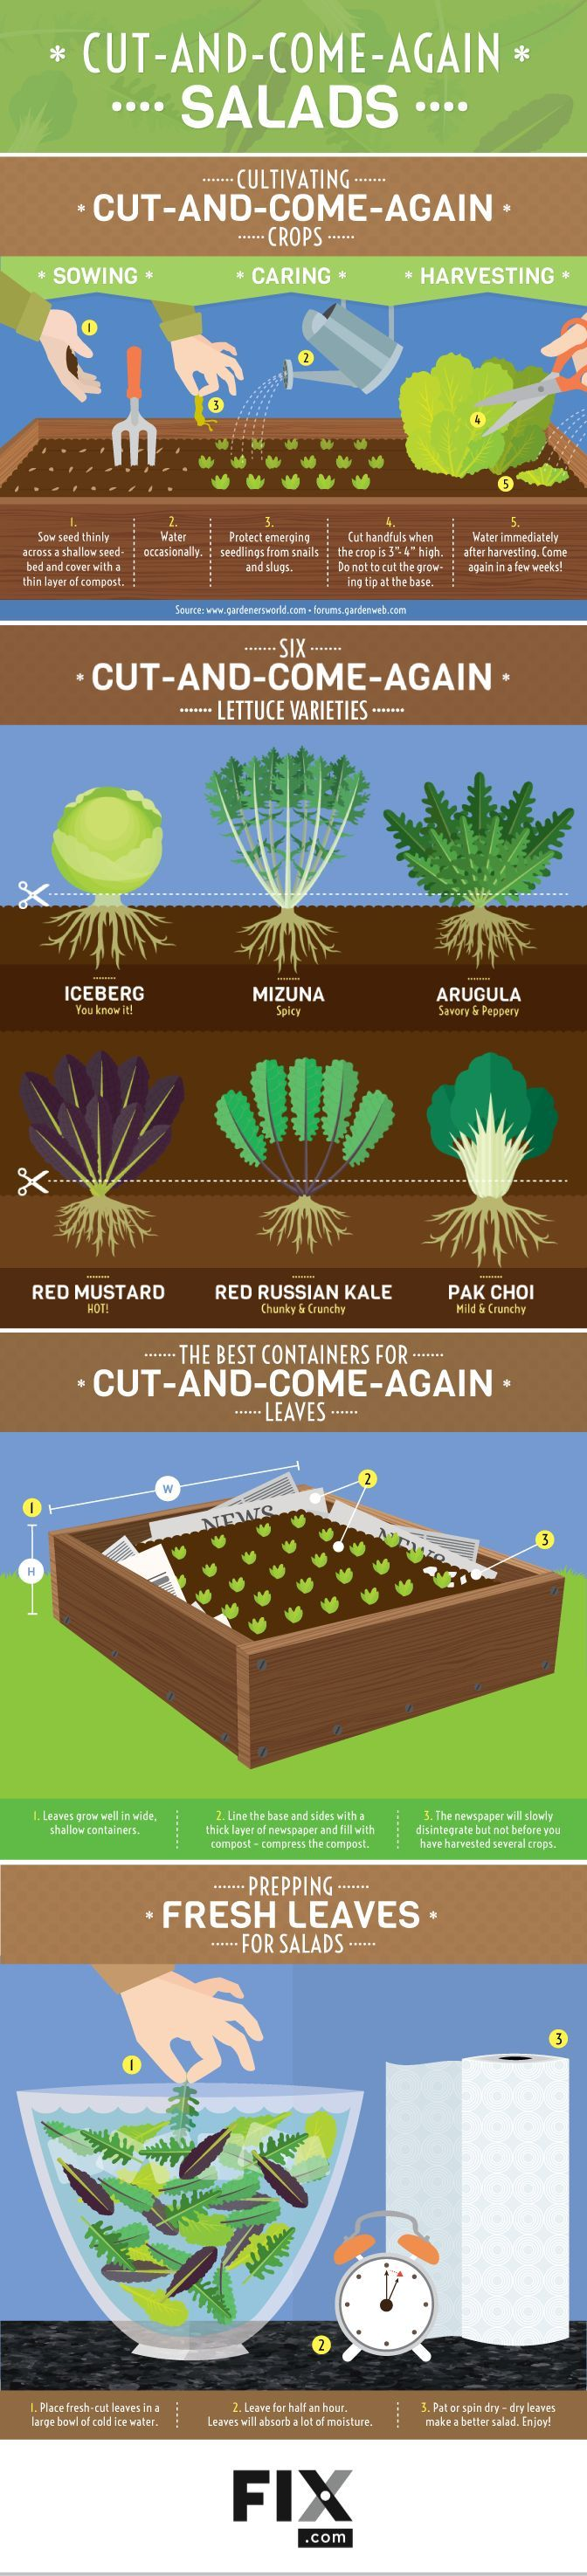 "Cut-and-Come-Again Salads <a class=""pintag"" href=""/explore/infographic/"" title=""#infographic explore Pinterest"">#infographic</a> <a class=""pintag"" href=""/explore/Gardening/"" title=""#Gardening explore Pinterest"">#Gardening</a> <a class=""pintag searchlink"" data-query=""#Salads"" data-type=""hashtag"" href=""/search/?q=#Salads"